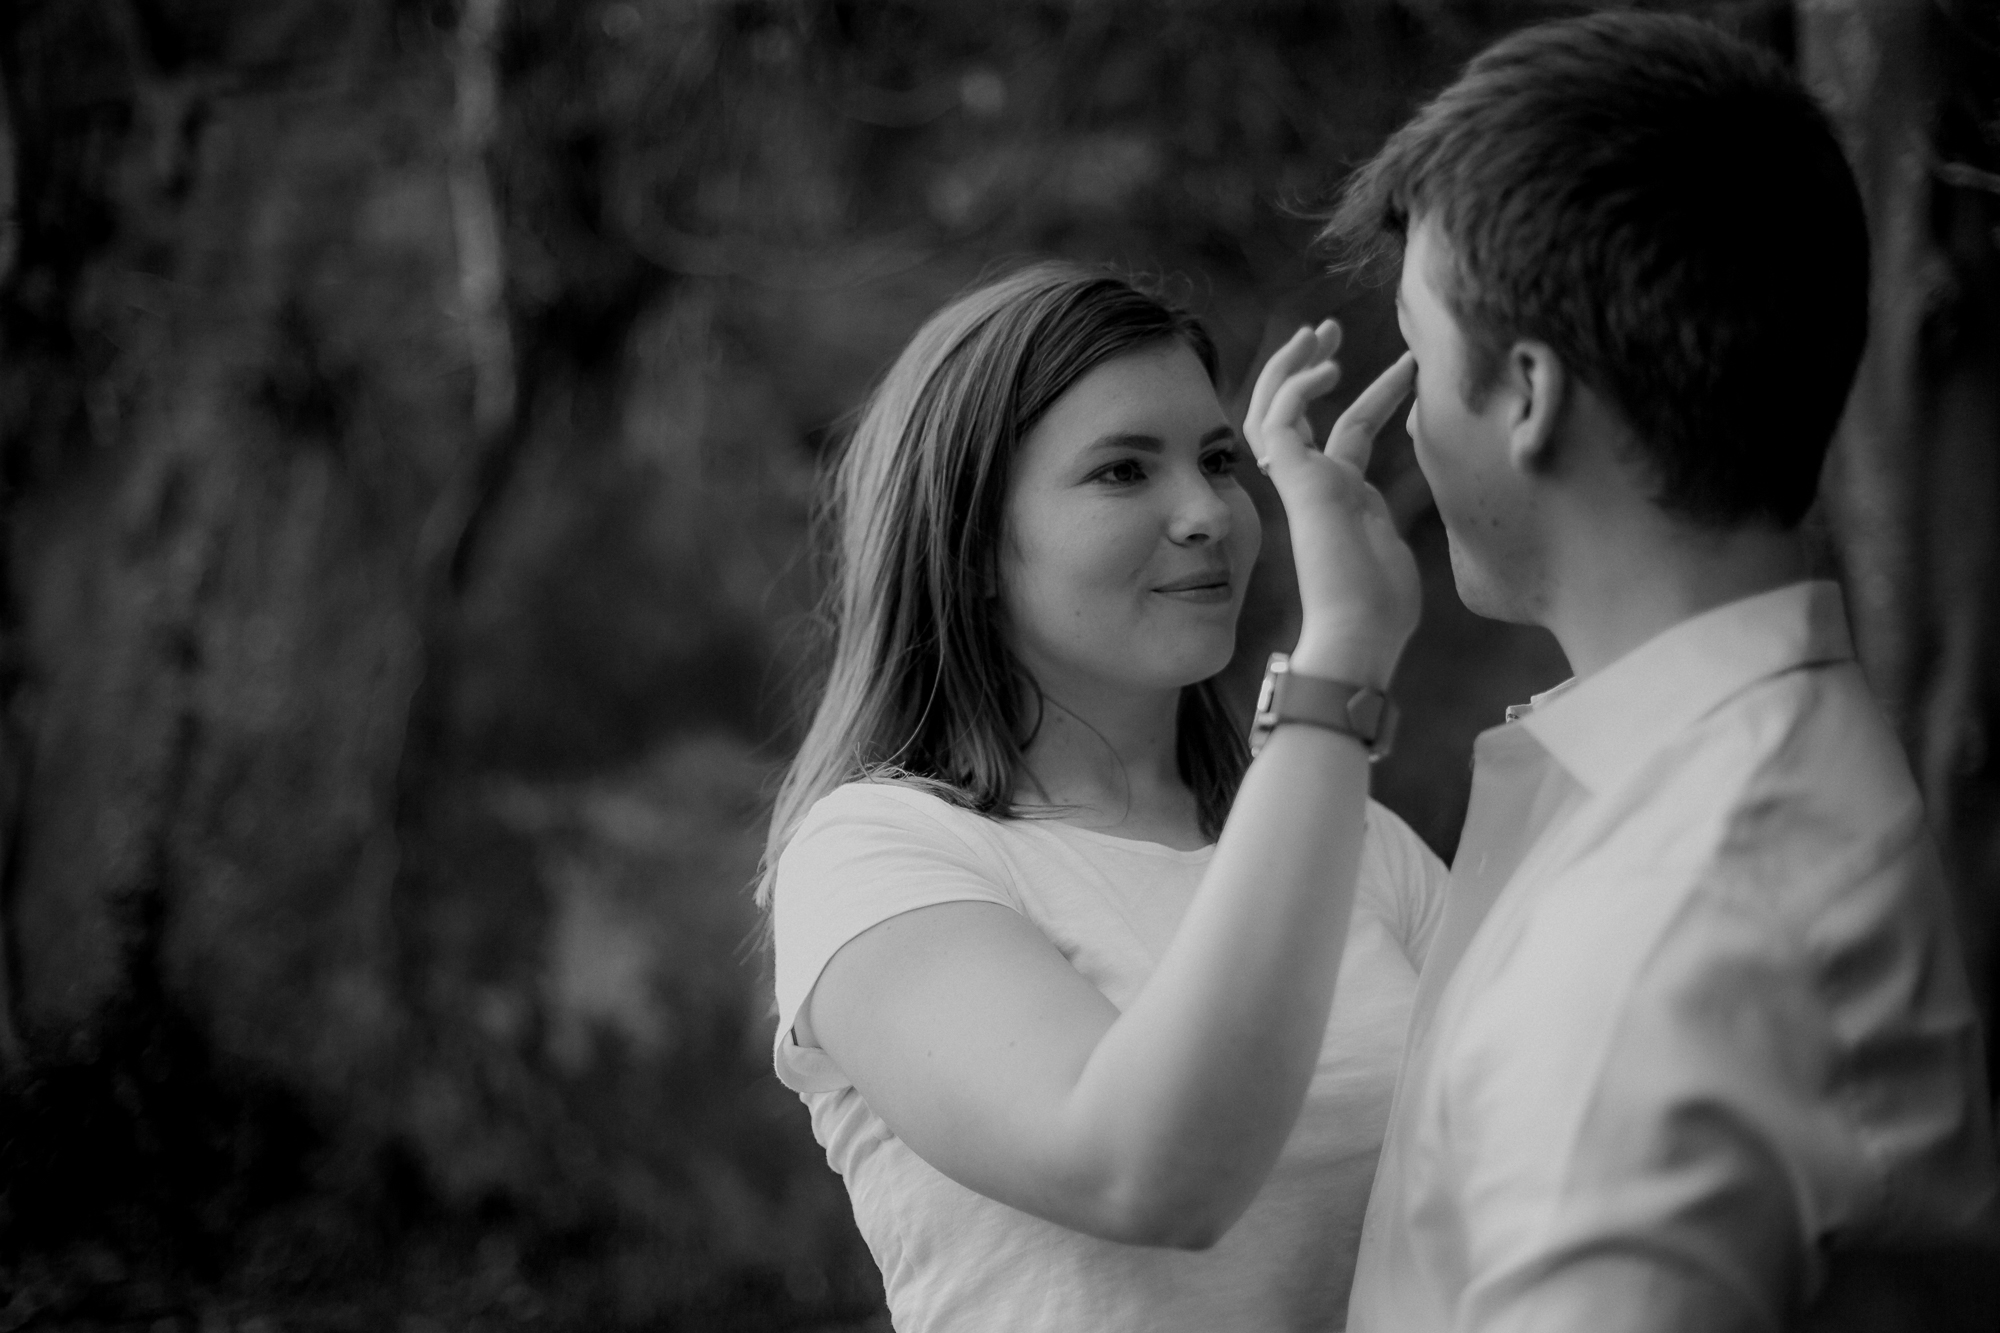 Amanzi and Steven_Engagement_Sydney_Holly Medway Photography-40.JPG